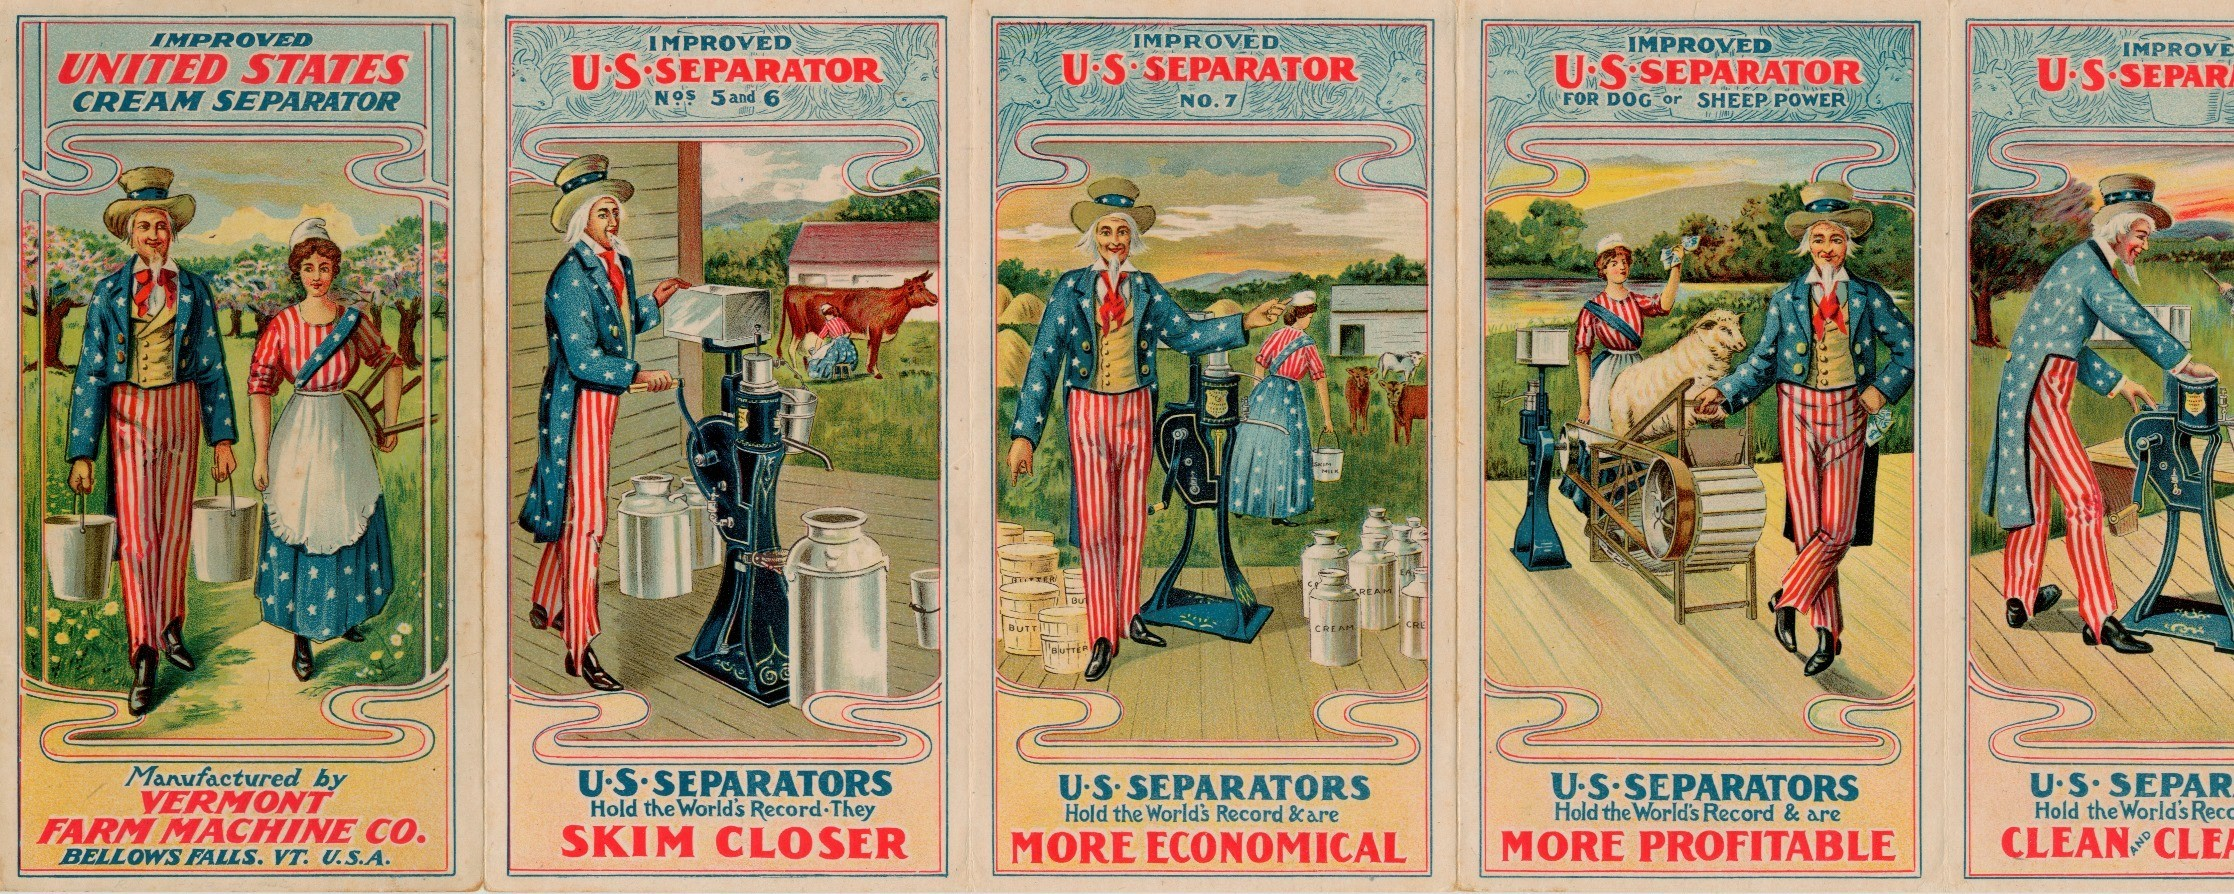 advertisement for Vermont Farm Machine Company cream separators showing Uncle Sam